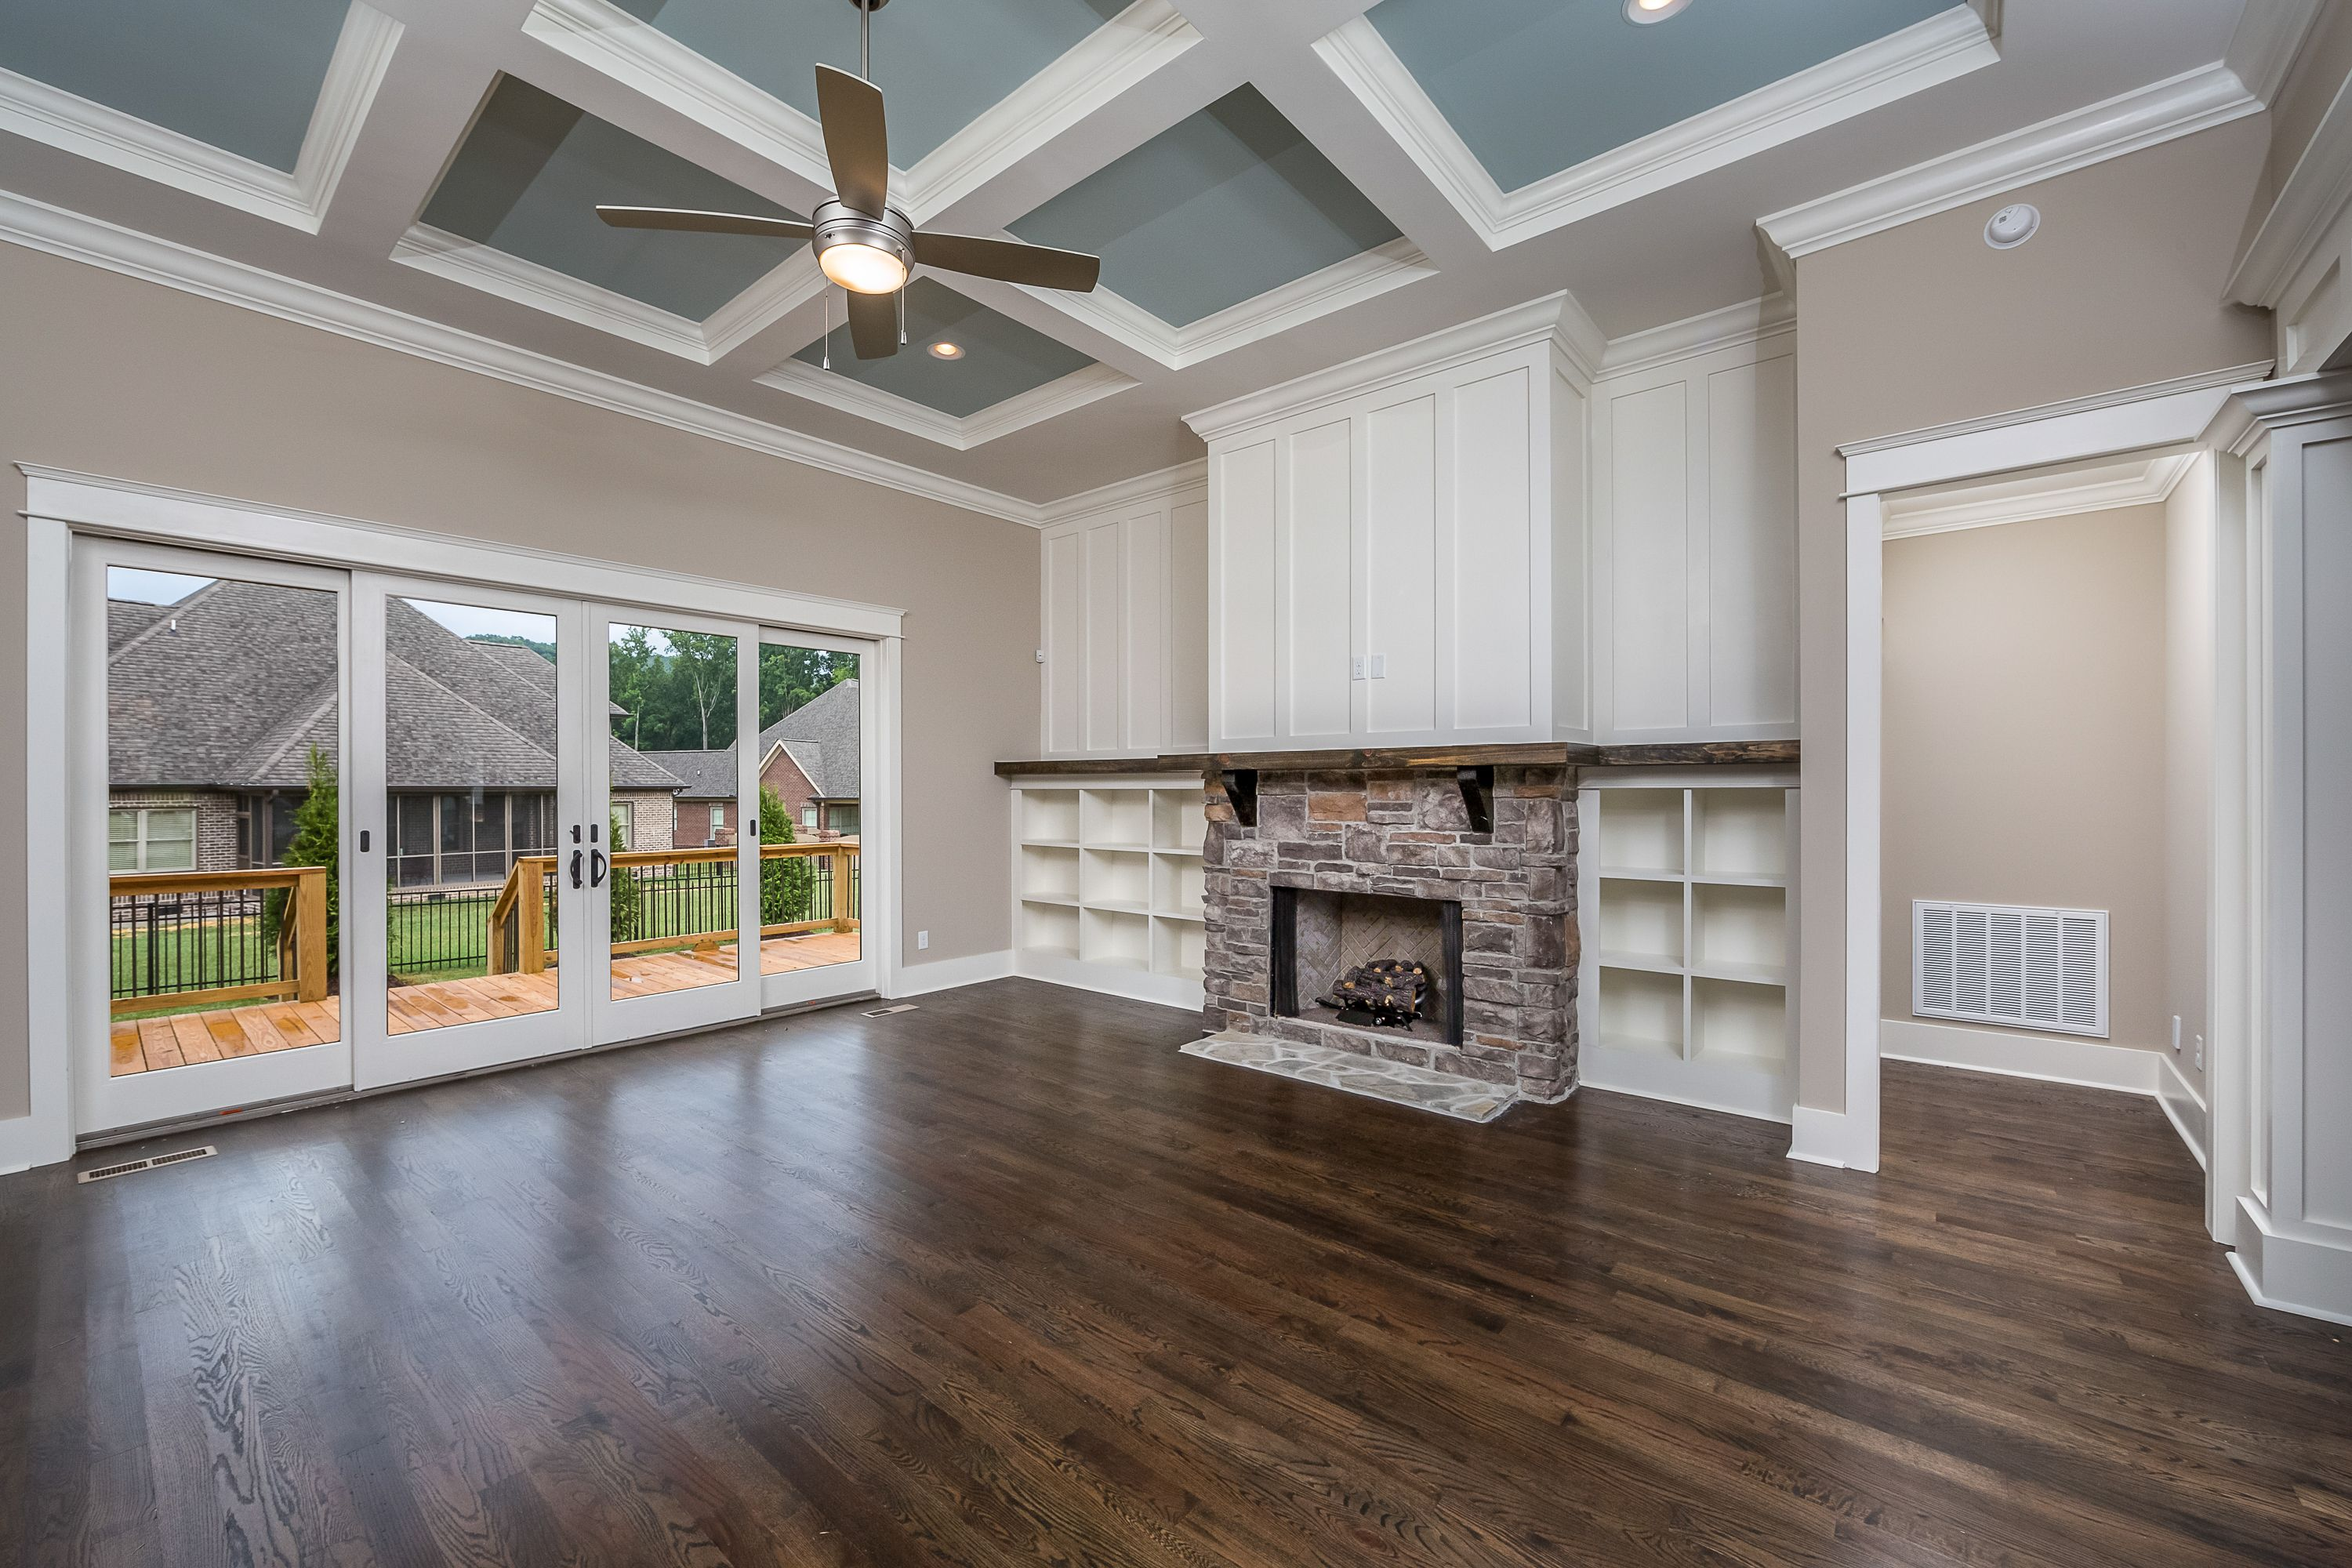 Beautiful Linear Fireplace, Coffered Ceiling, And Modern Tile For Focal